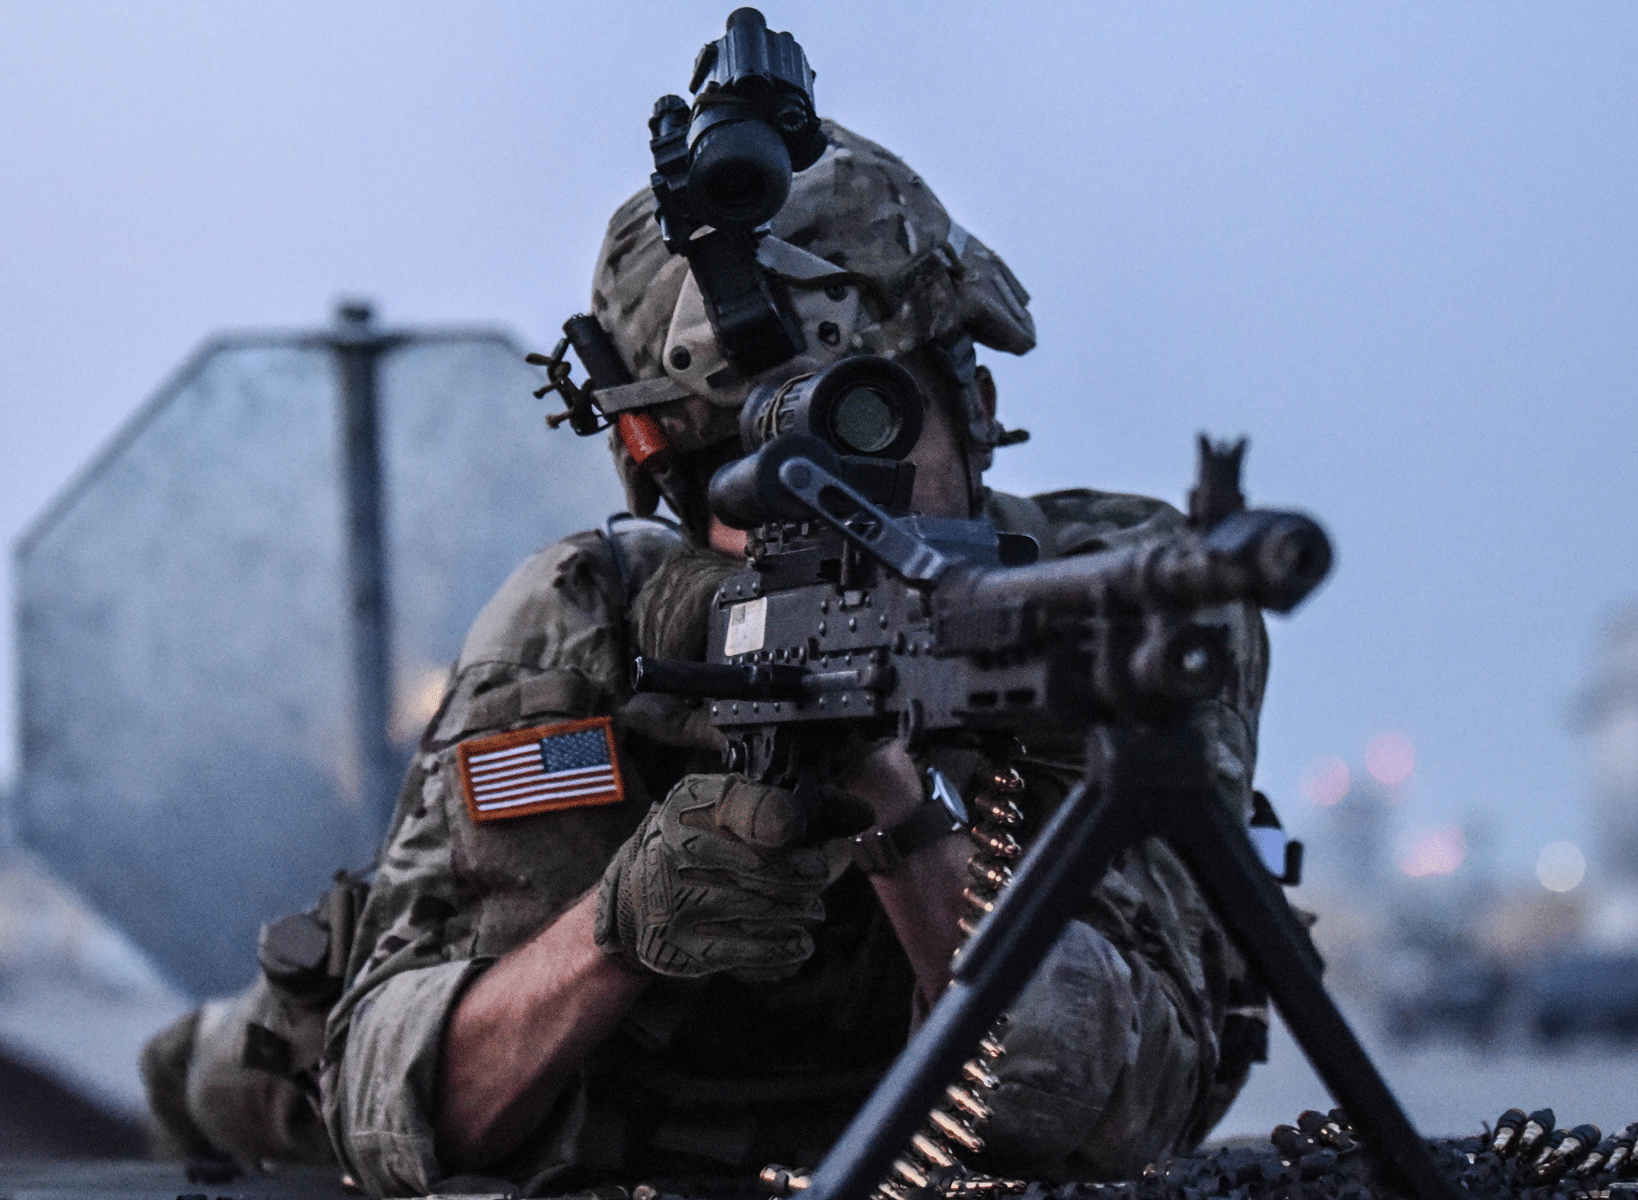 1st Battalion, 143rd Infantry Regiment 173rd Airborne Brigade Combat Team United States Army conducts an airfield seizure in Turzii, Romania during Exercise Saber Guardian 17.